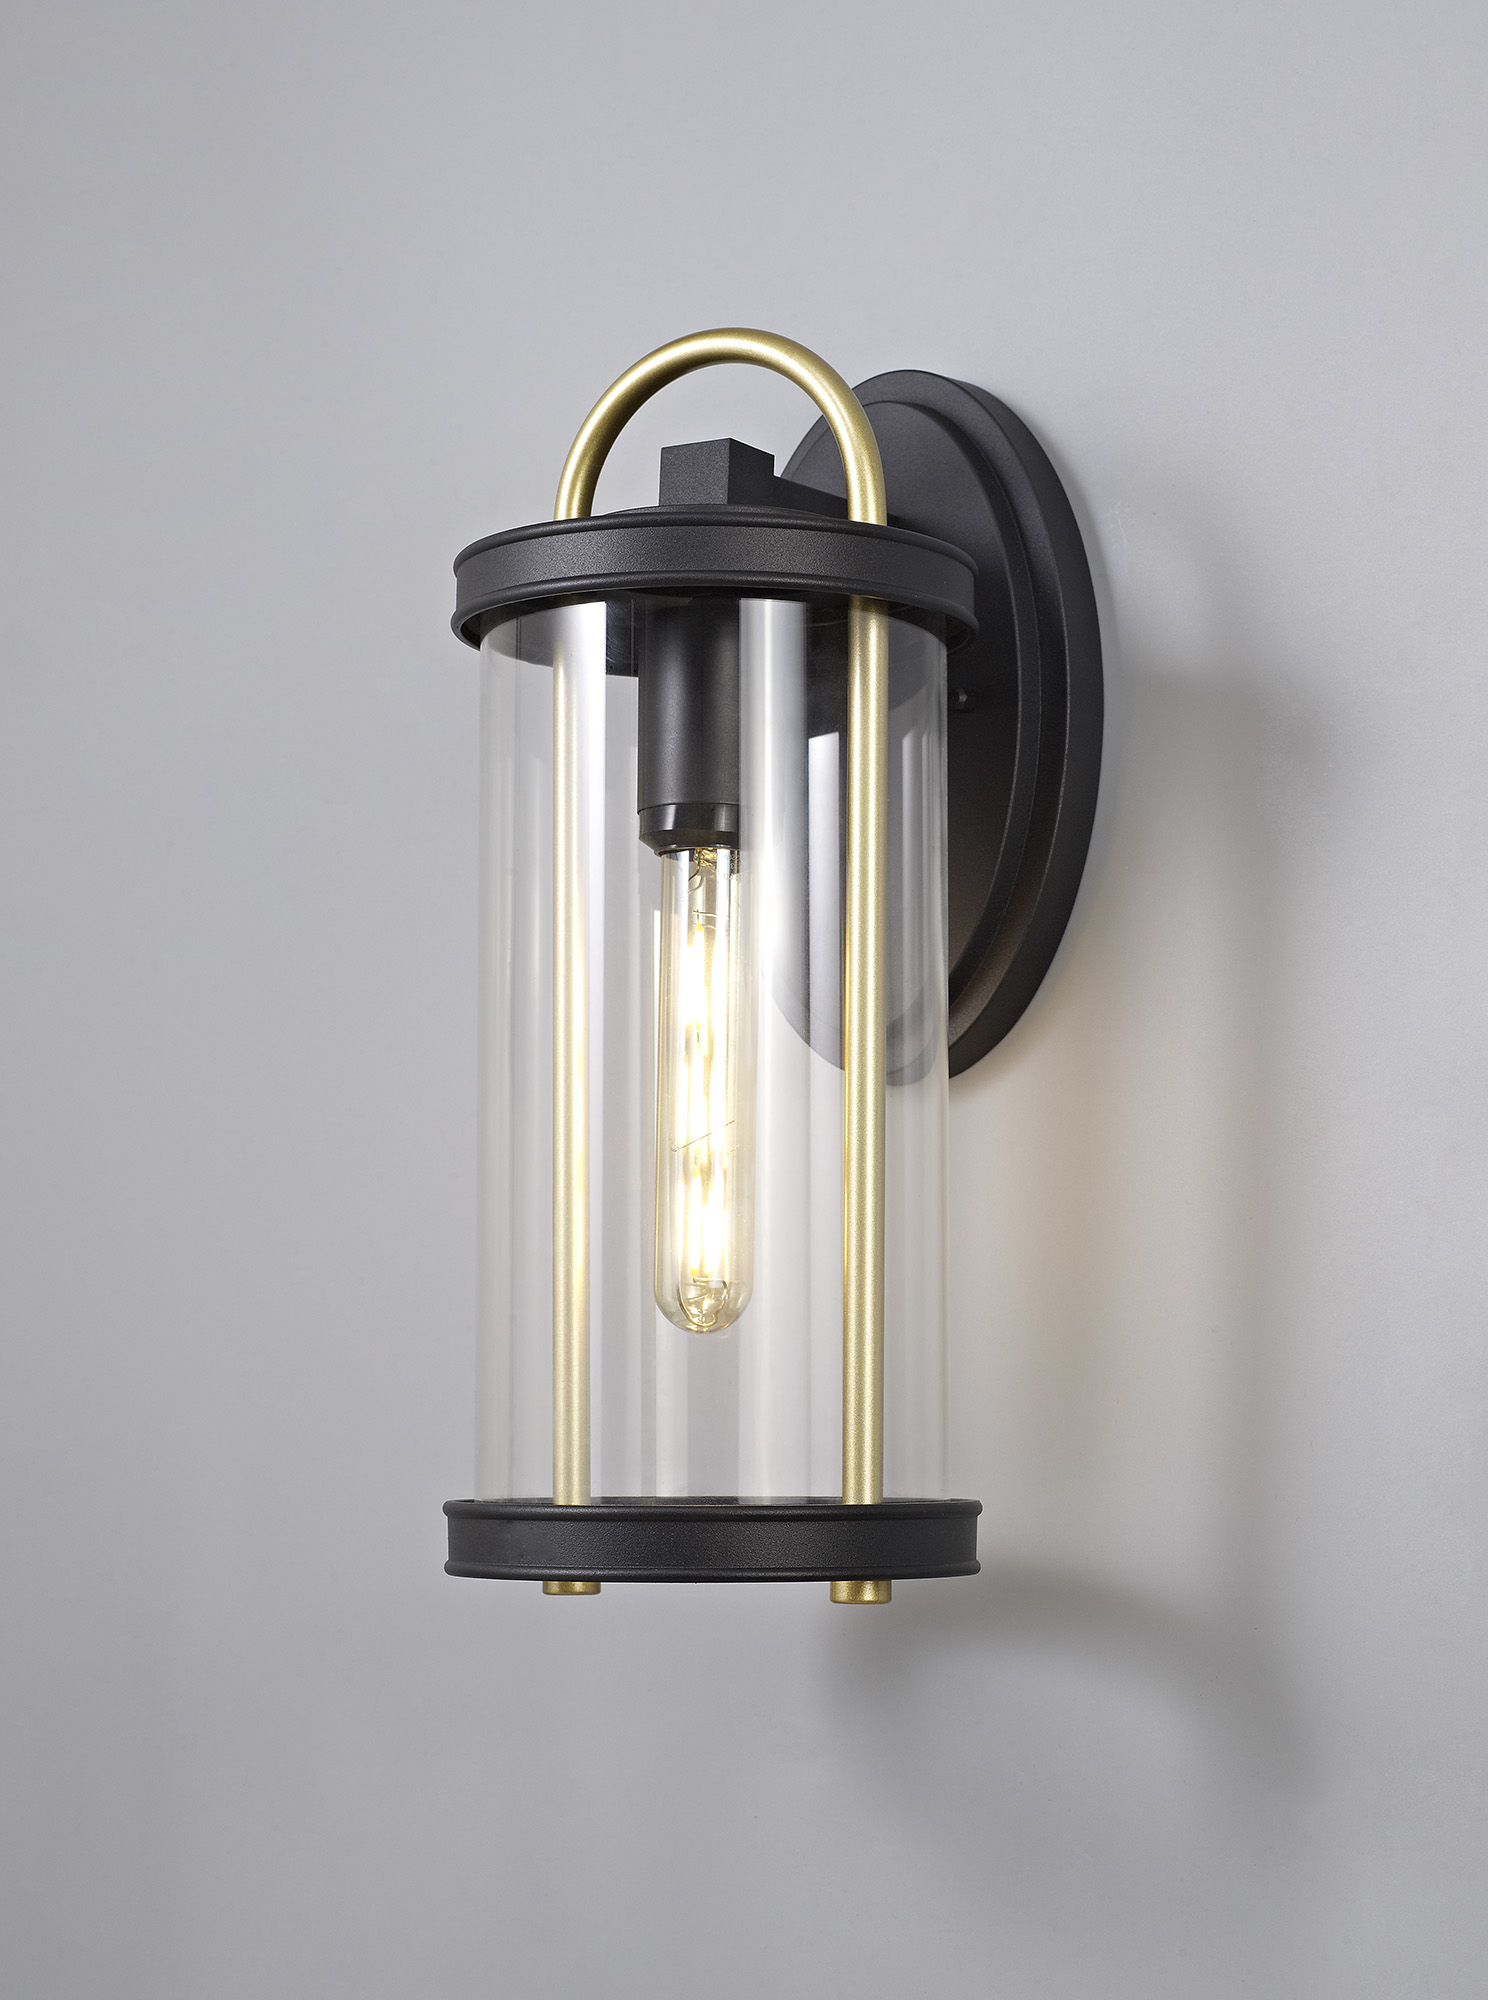 Large Wall Lamp, 1 x E27, Black & Gold/Clear Glass, IP54, 2yrs Warranty